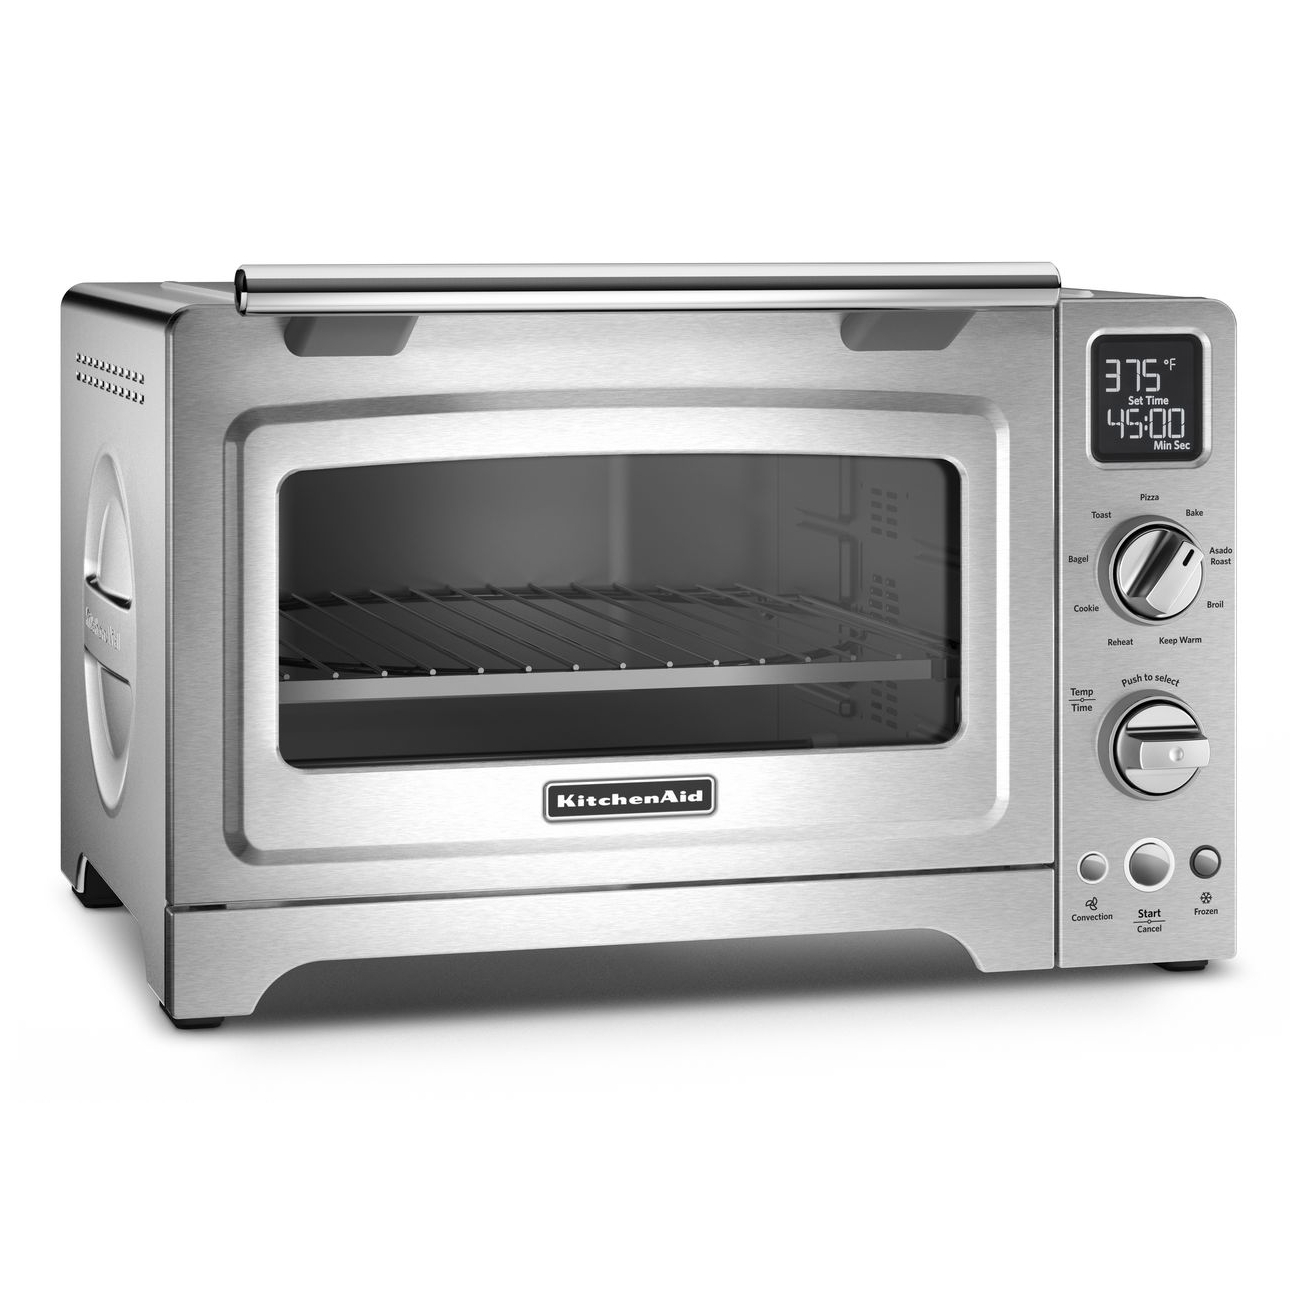 KitchenAid Stainless Steel Digital Convection Oven